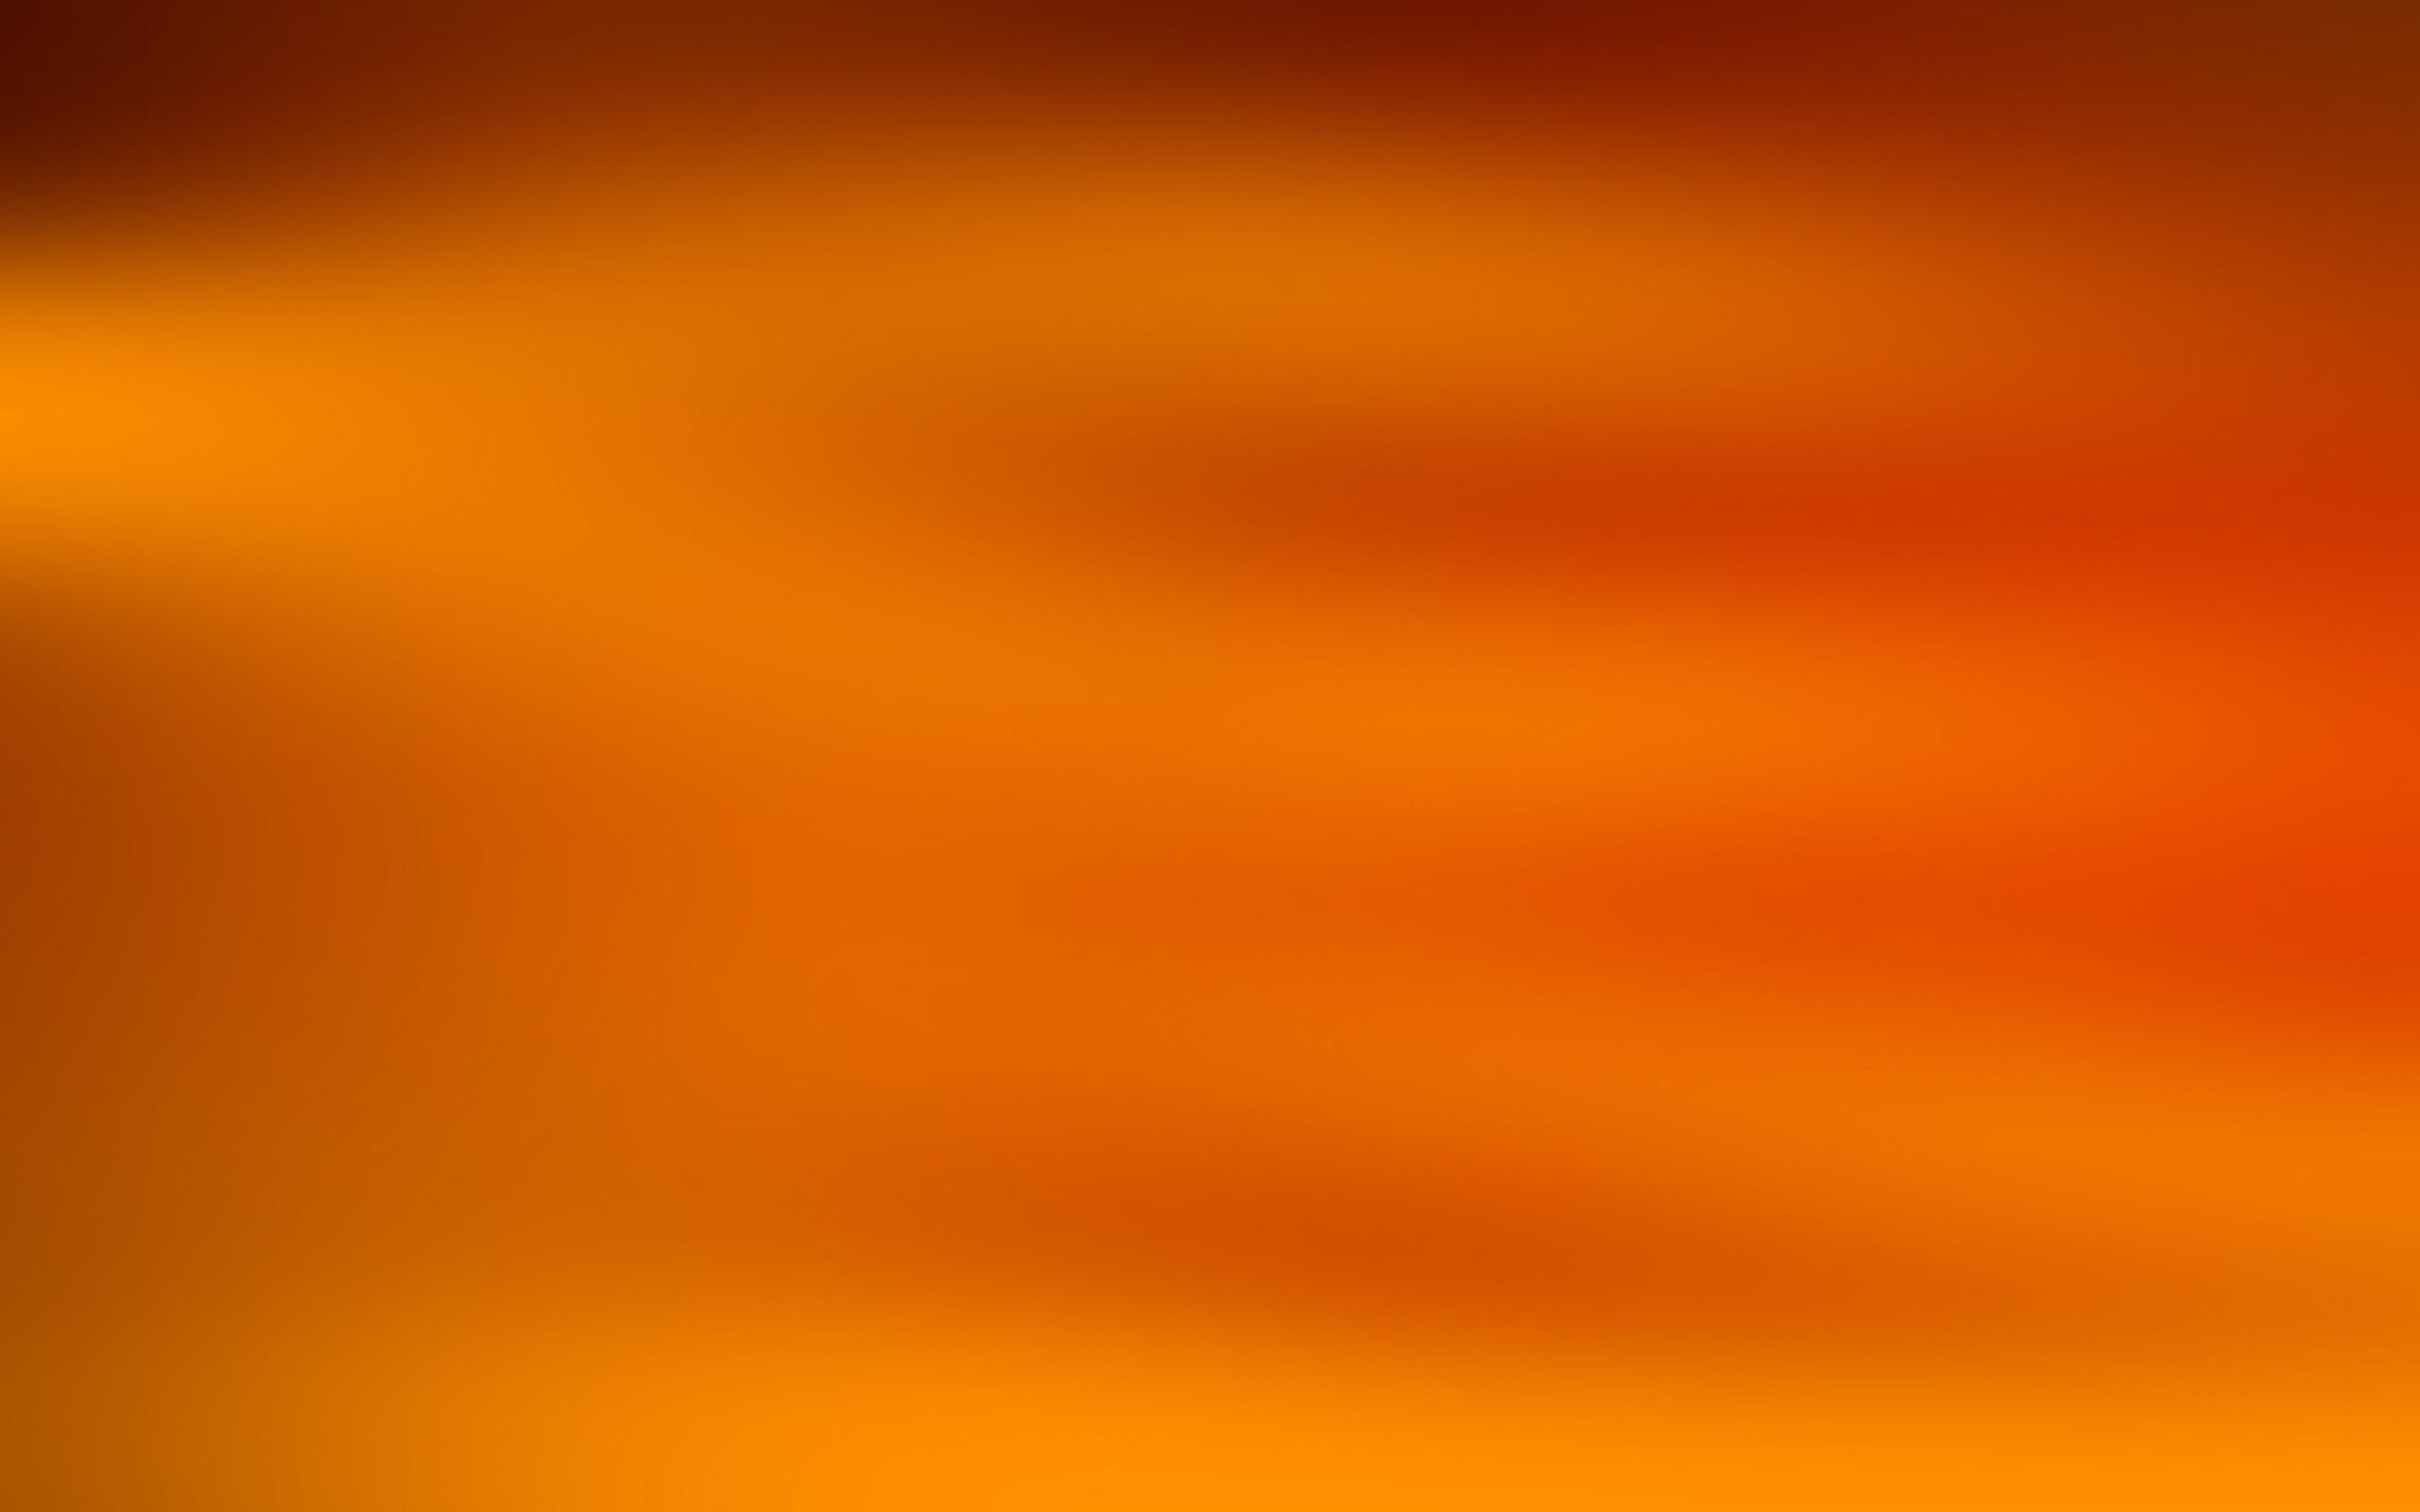 Orange Surface Wallpaper